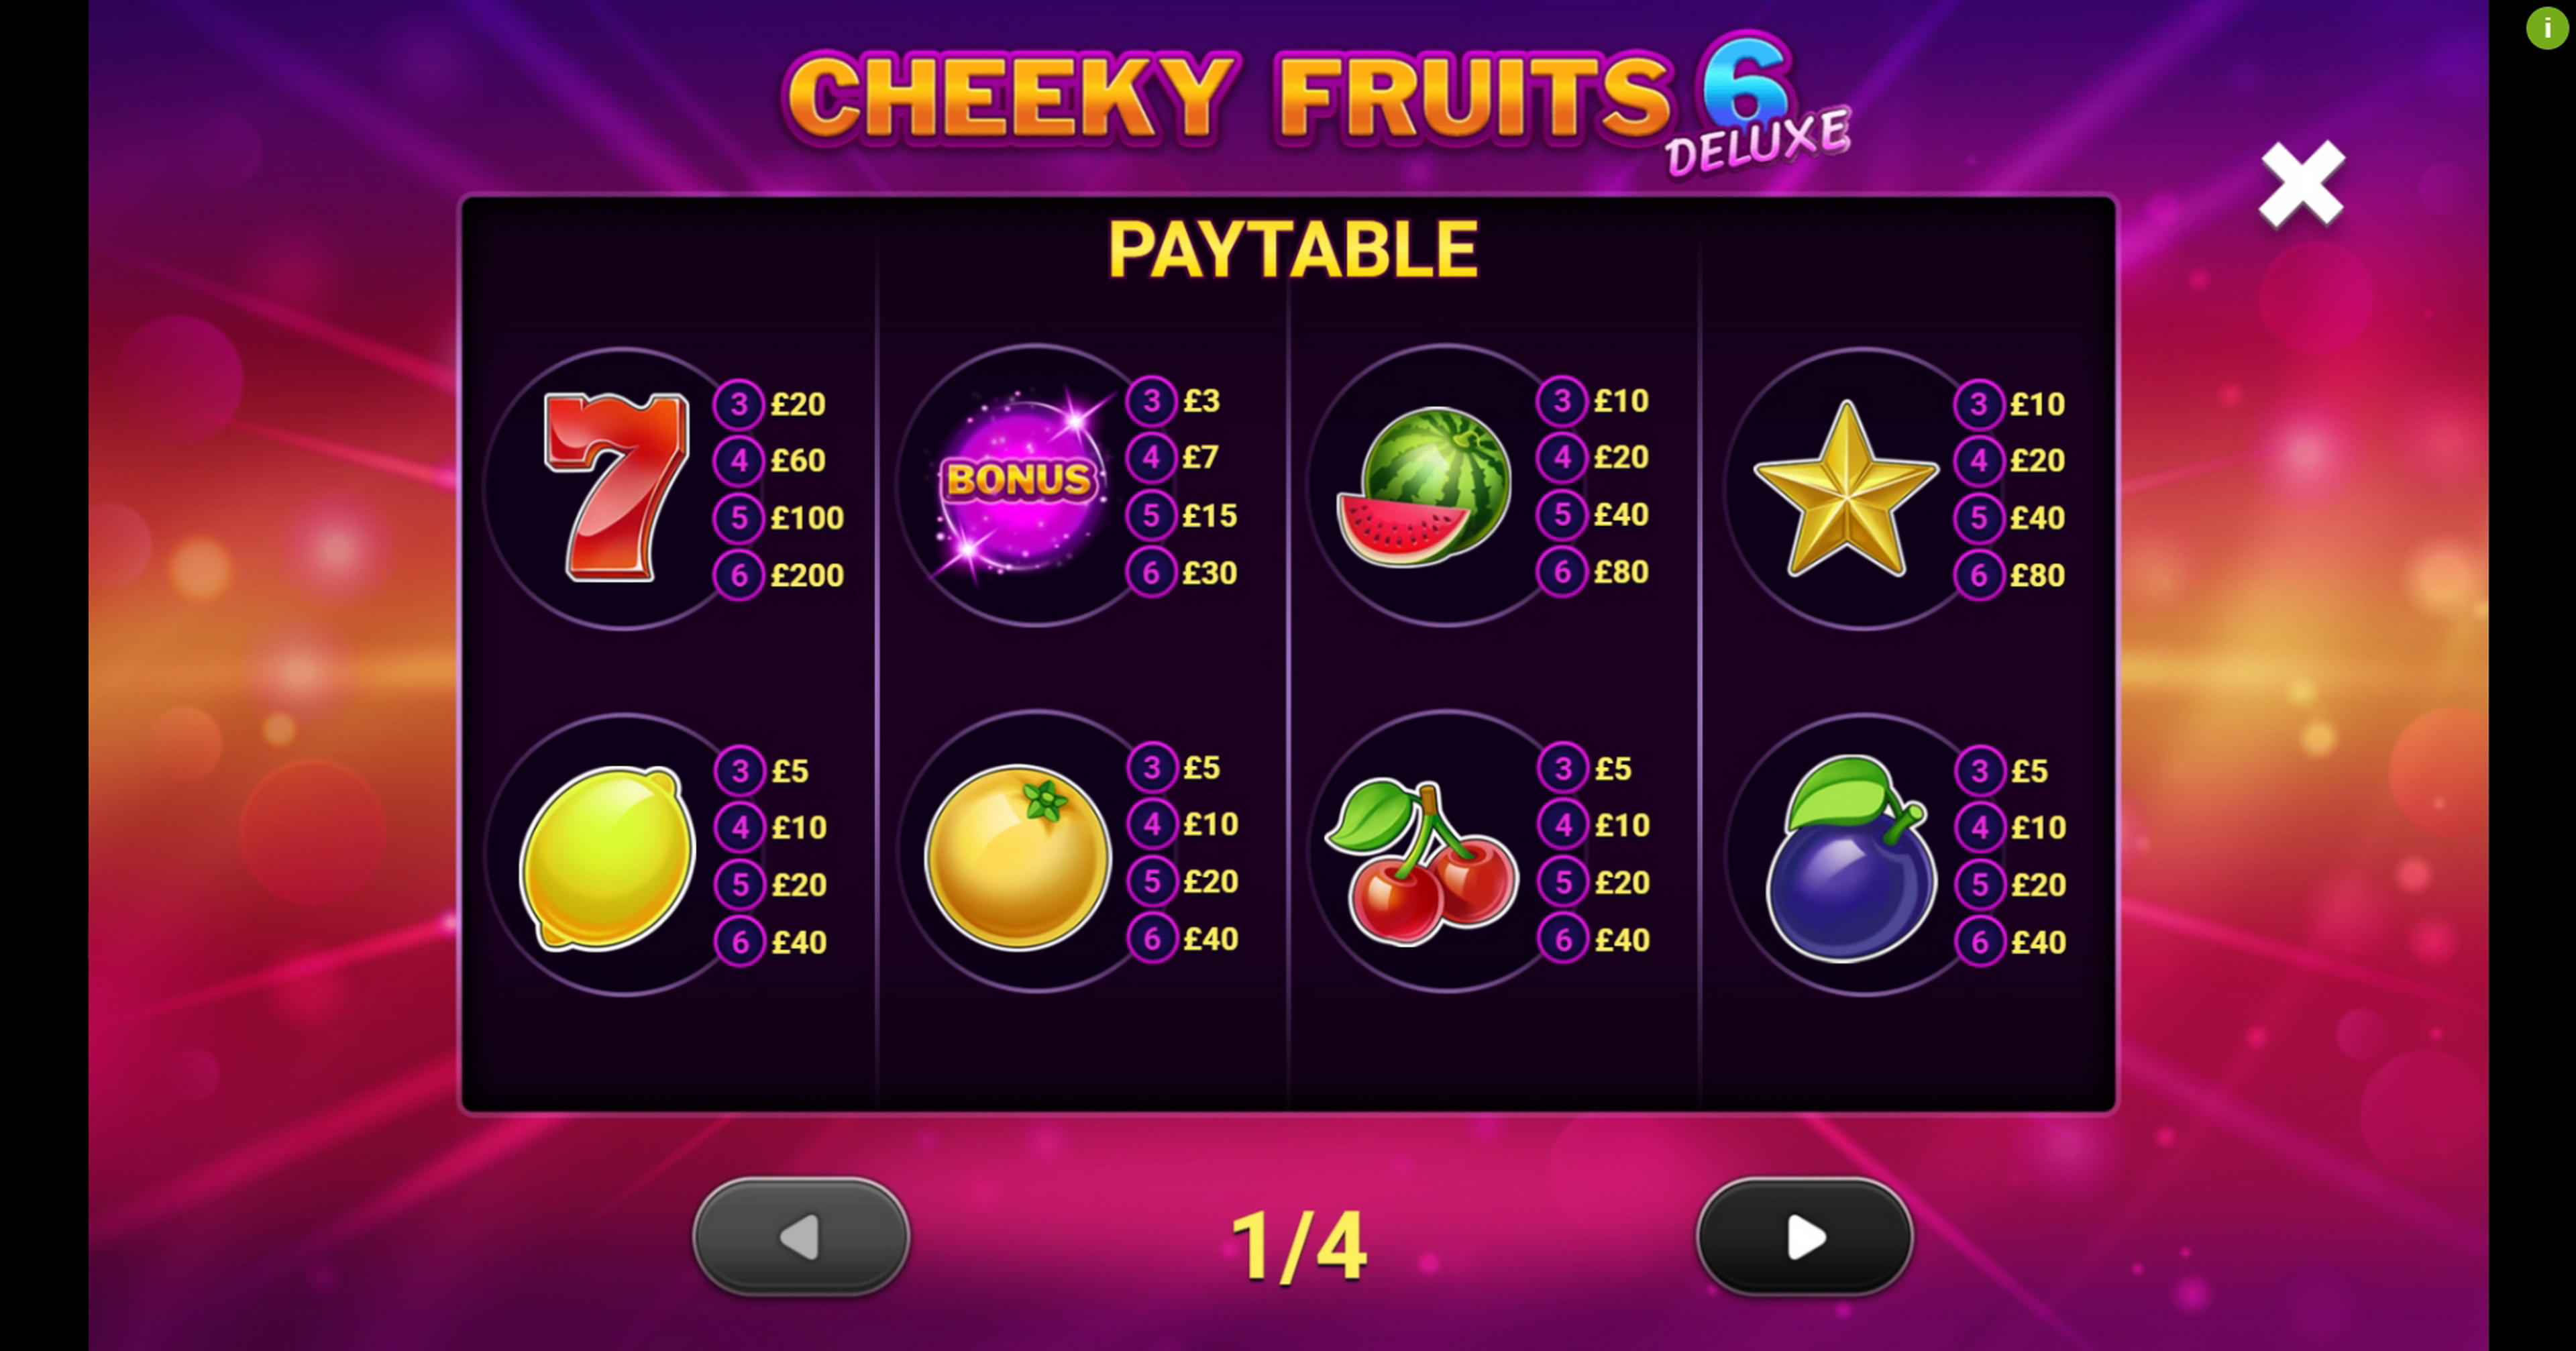 Info of Cheeky Fruits 6 Deluxe Slot Game by Gluck Games